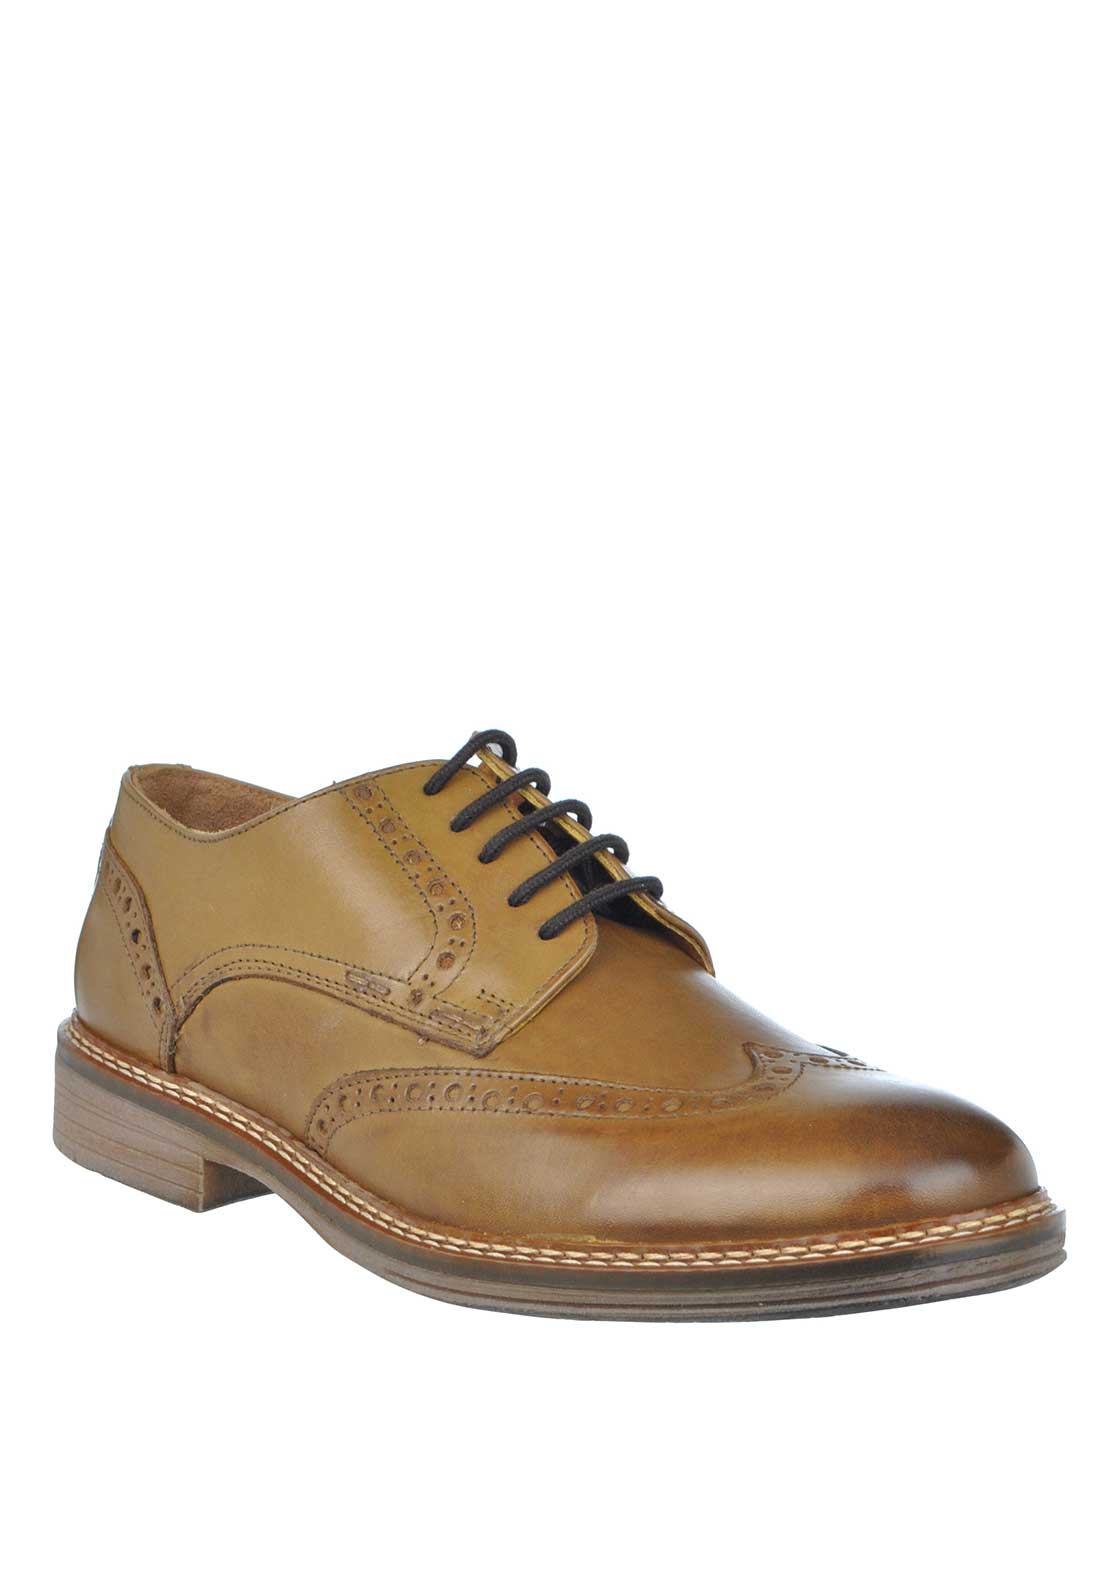 Dubarry Stefan Leather Lace Up Brogue Shoe, Tan